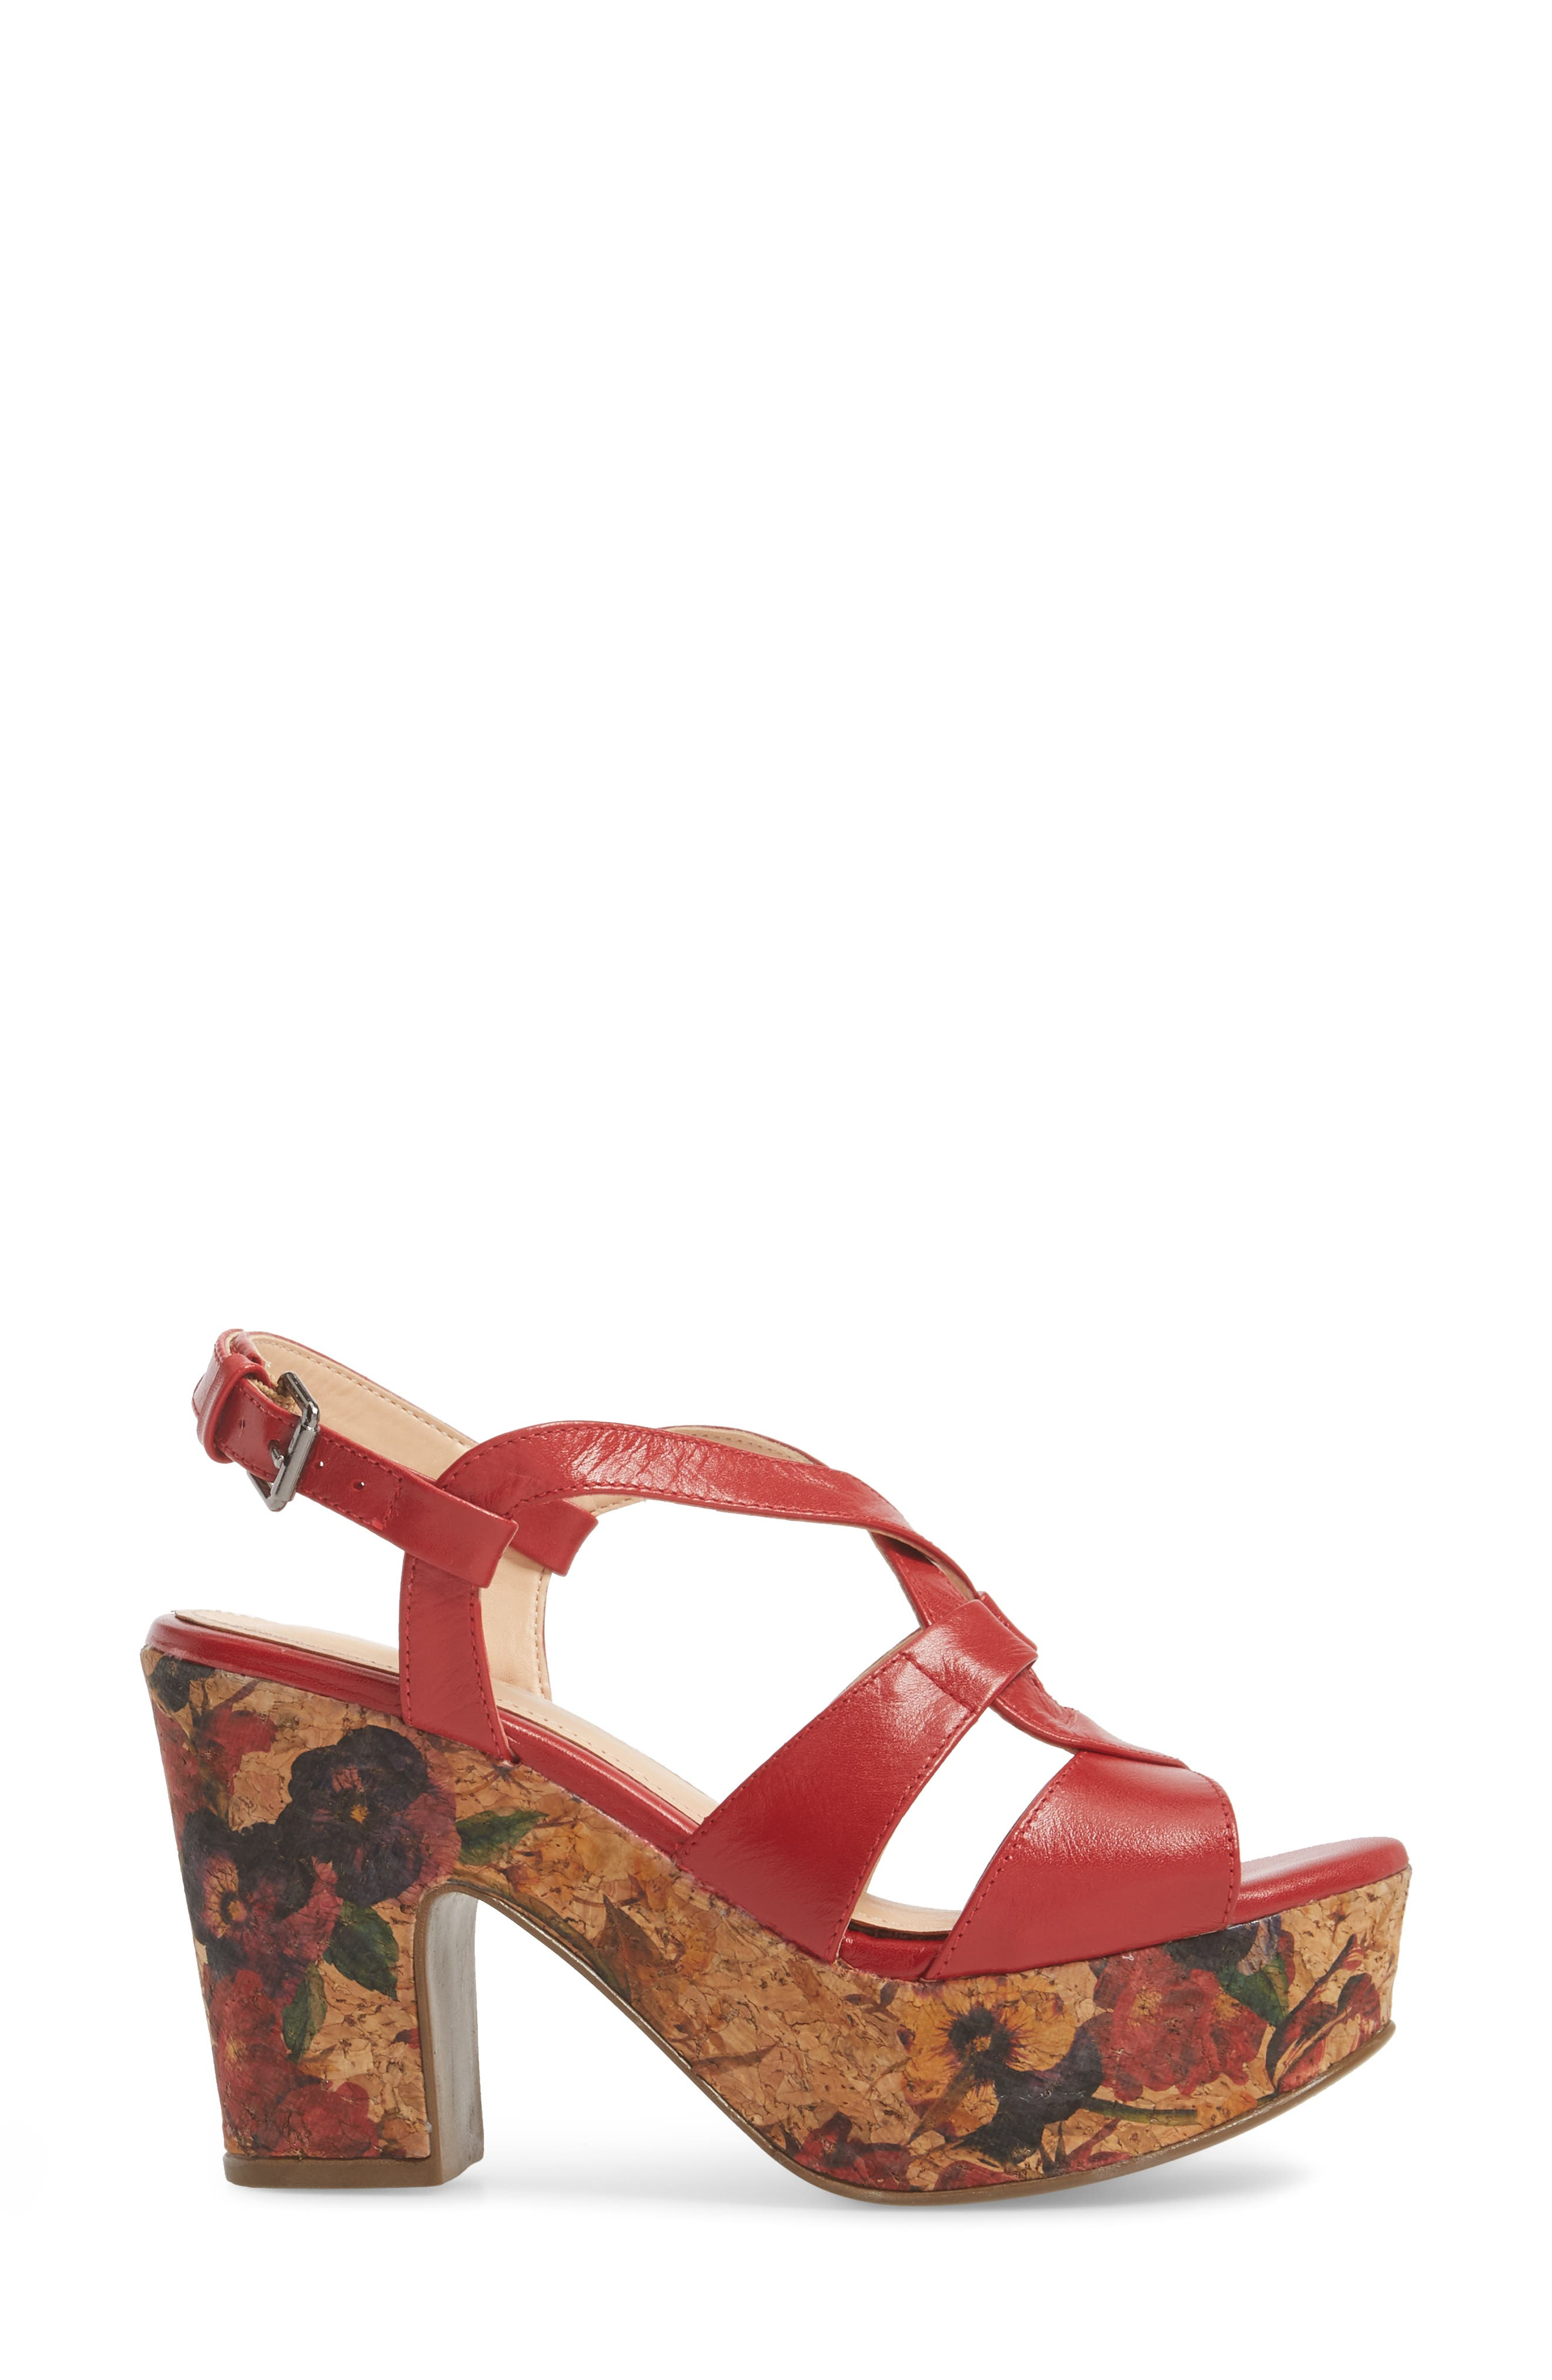 Victoria Platform Sandal,                             Alternate thumbnail 3, color,                             Red Leather